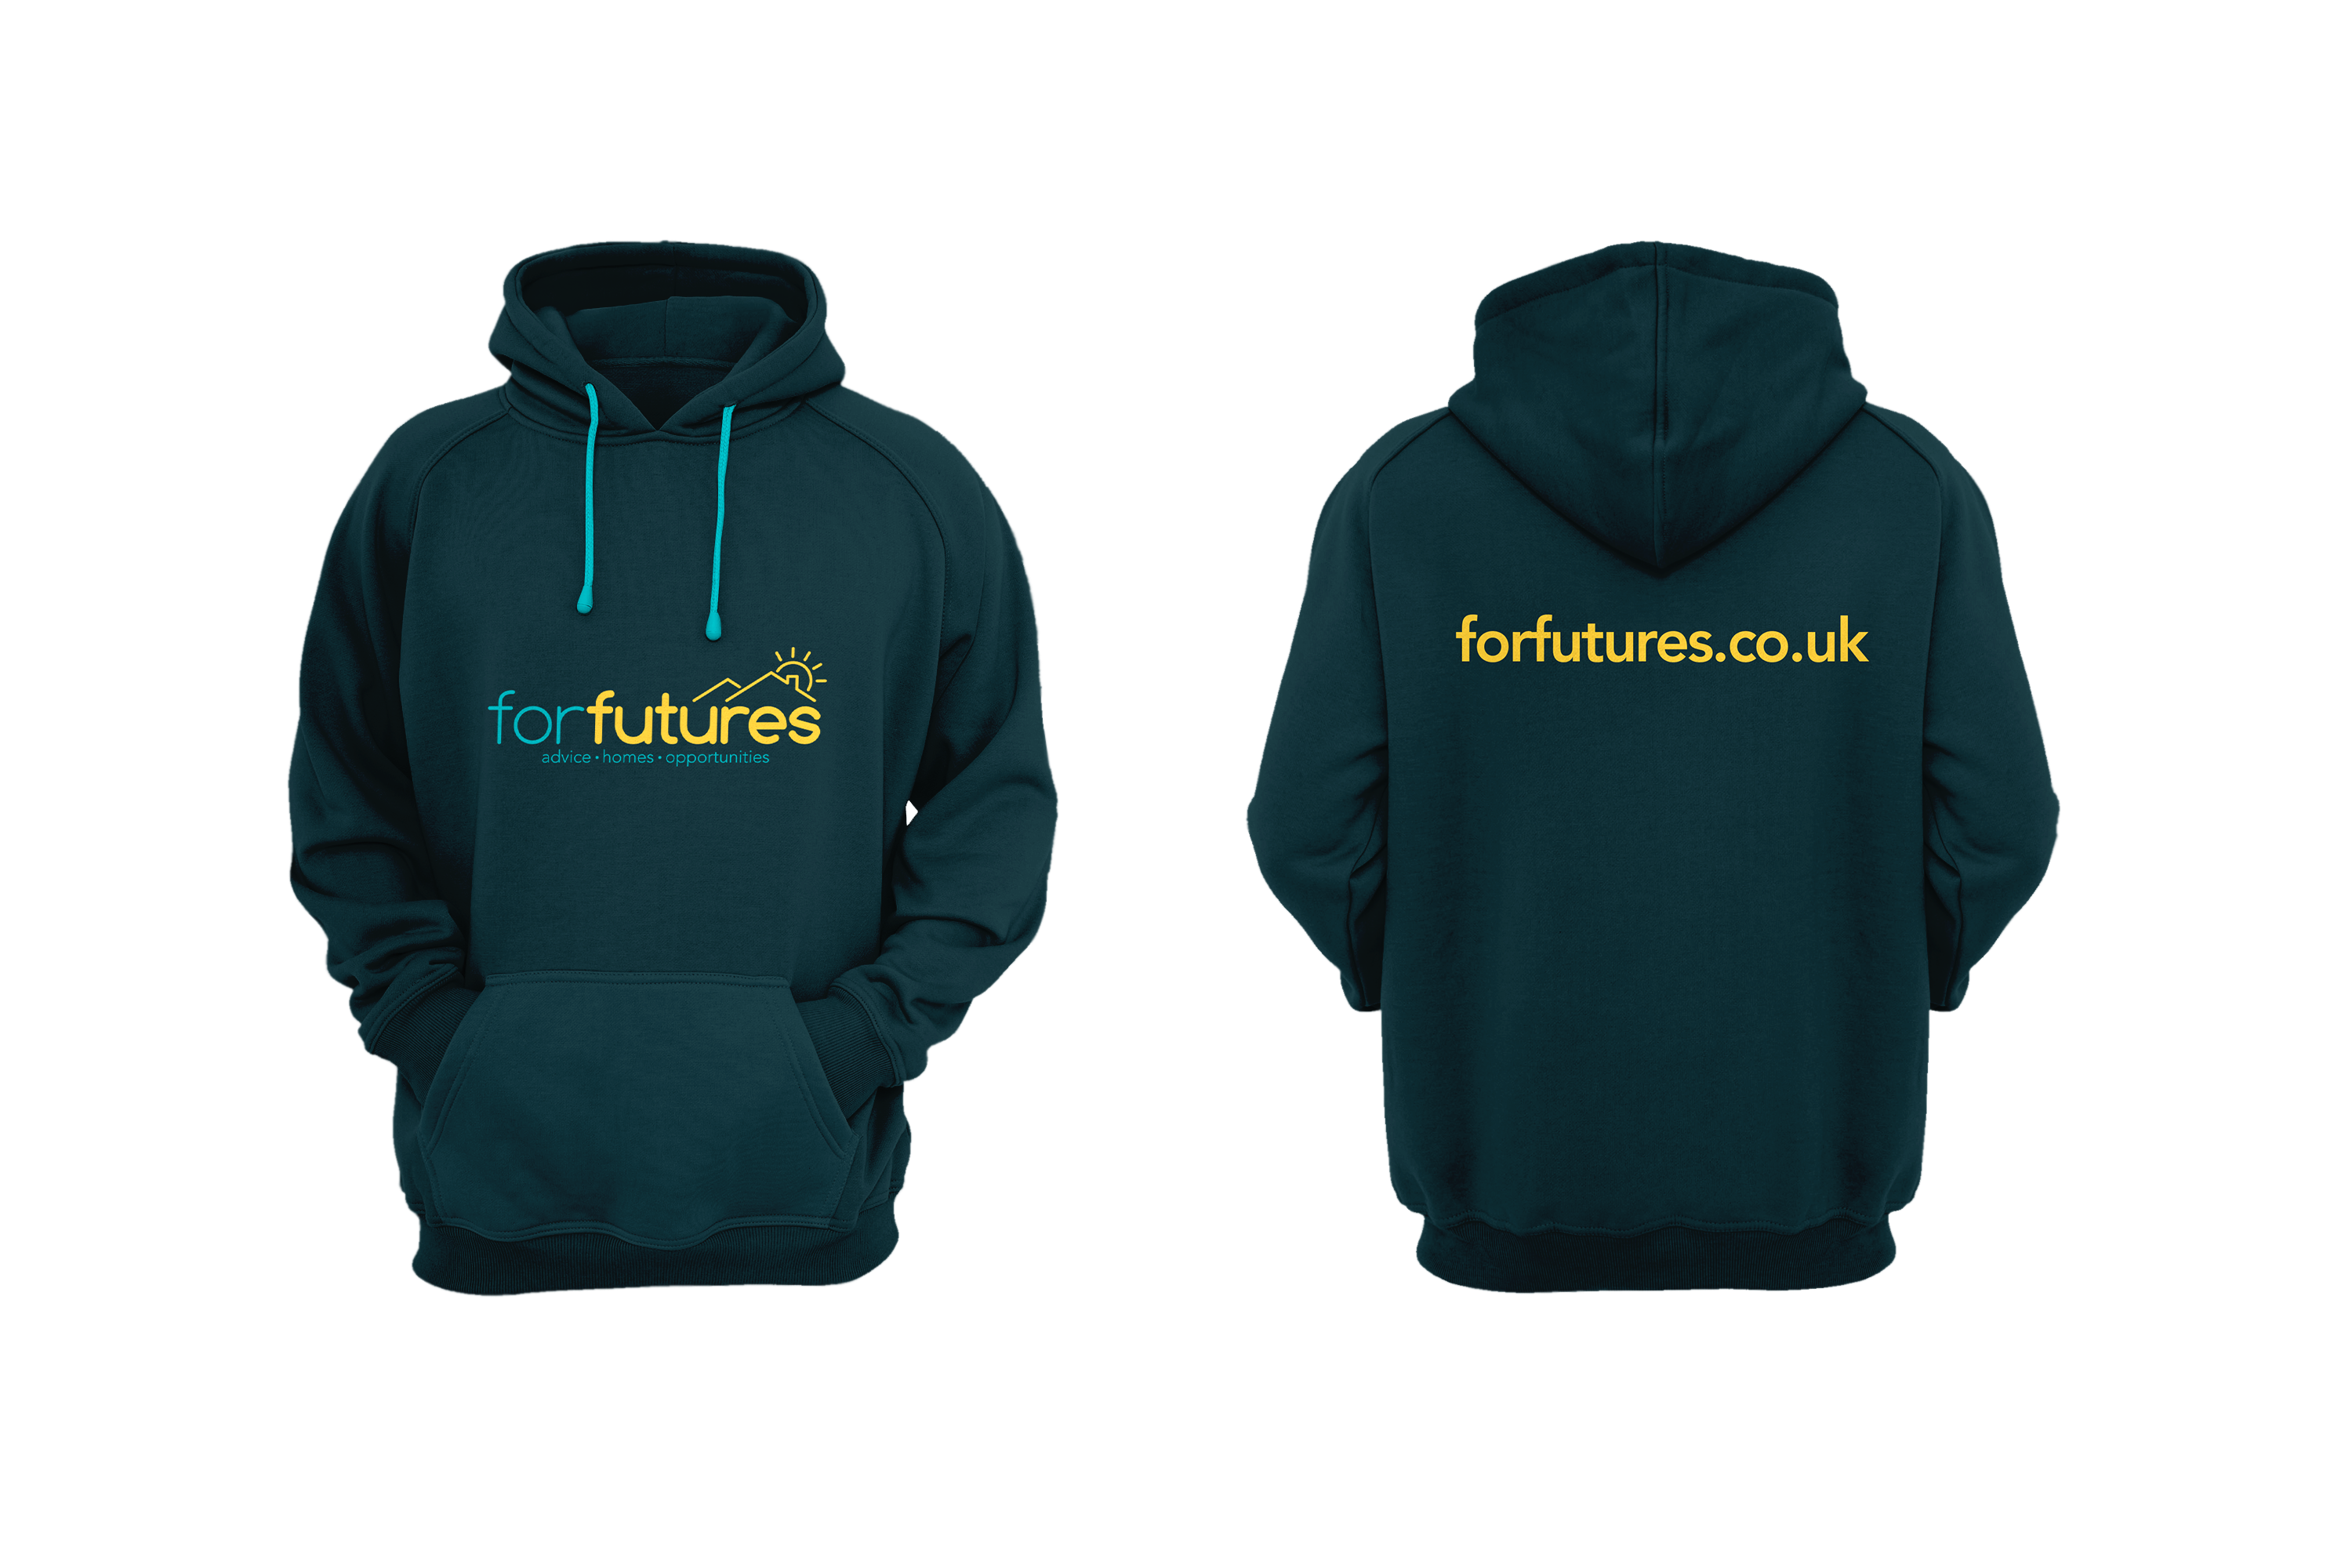 front and back of dark blue green hoody with forfutures logo on front and the web address forfutures.co.uk on the back